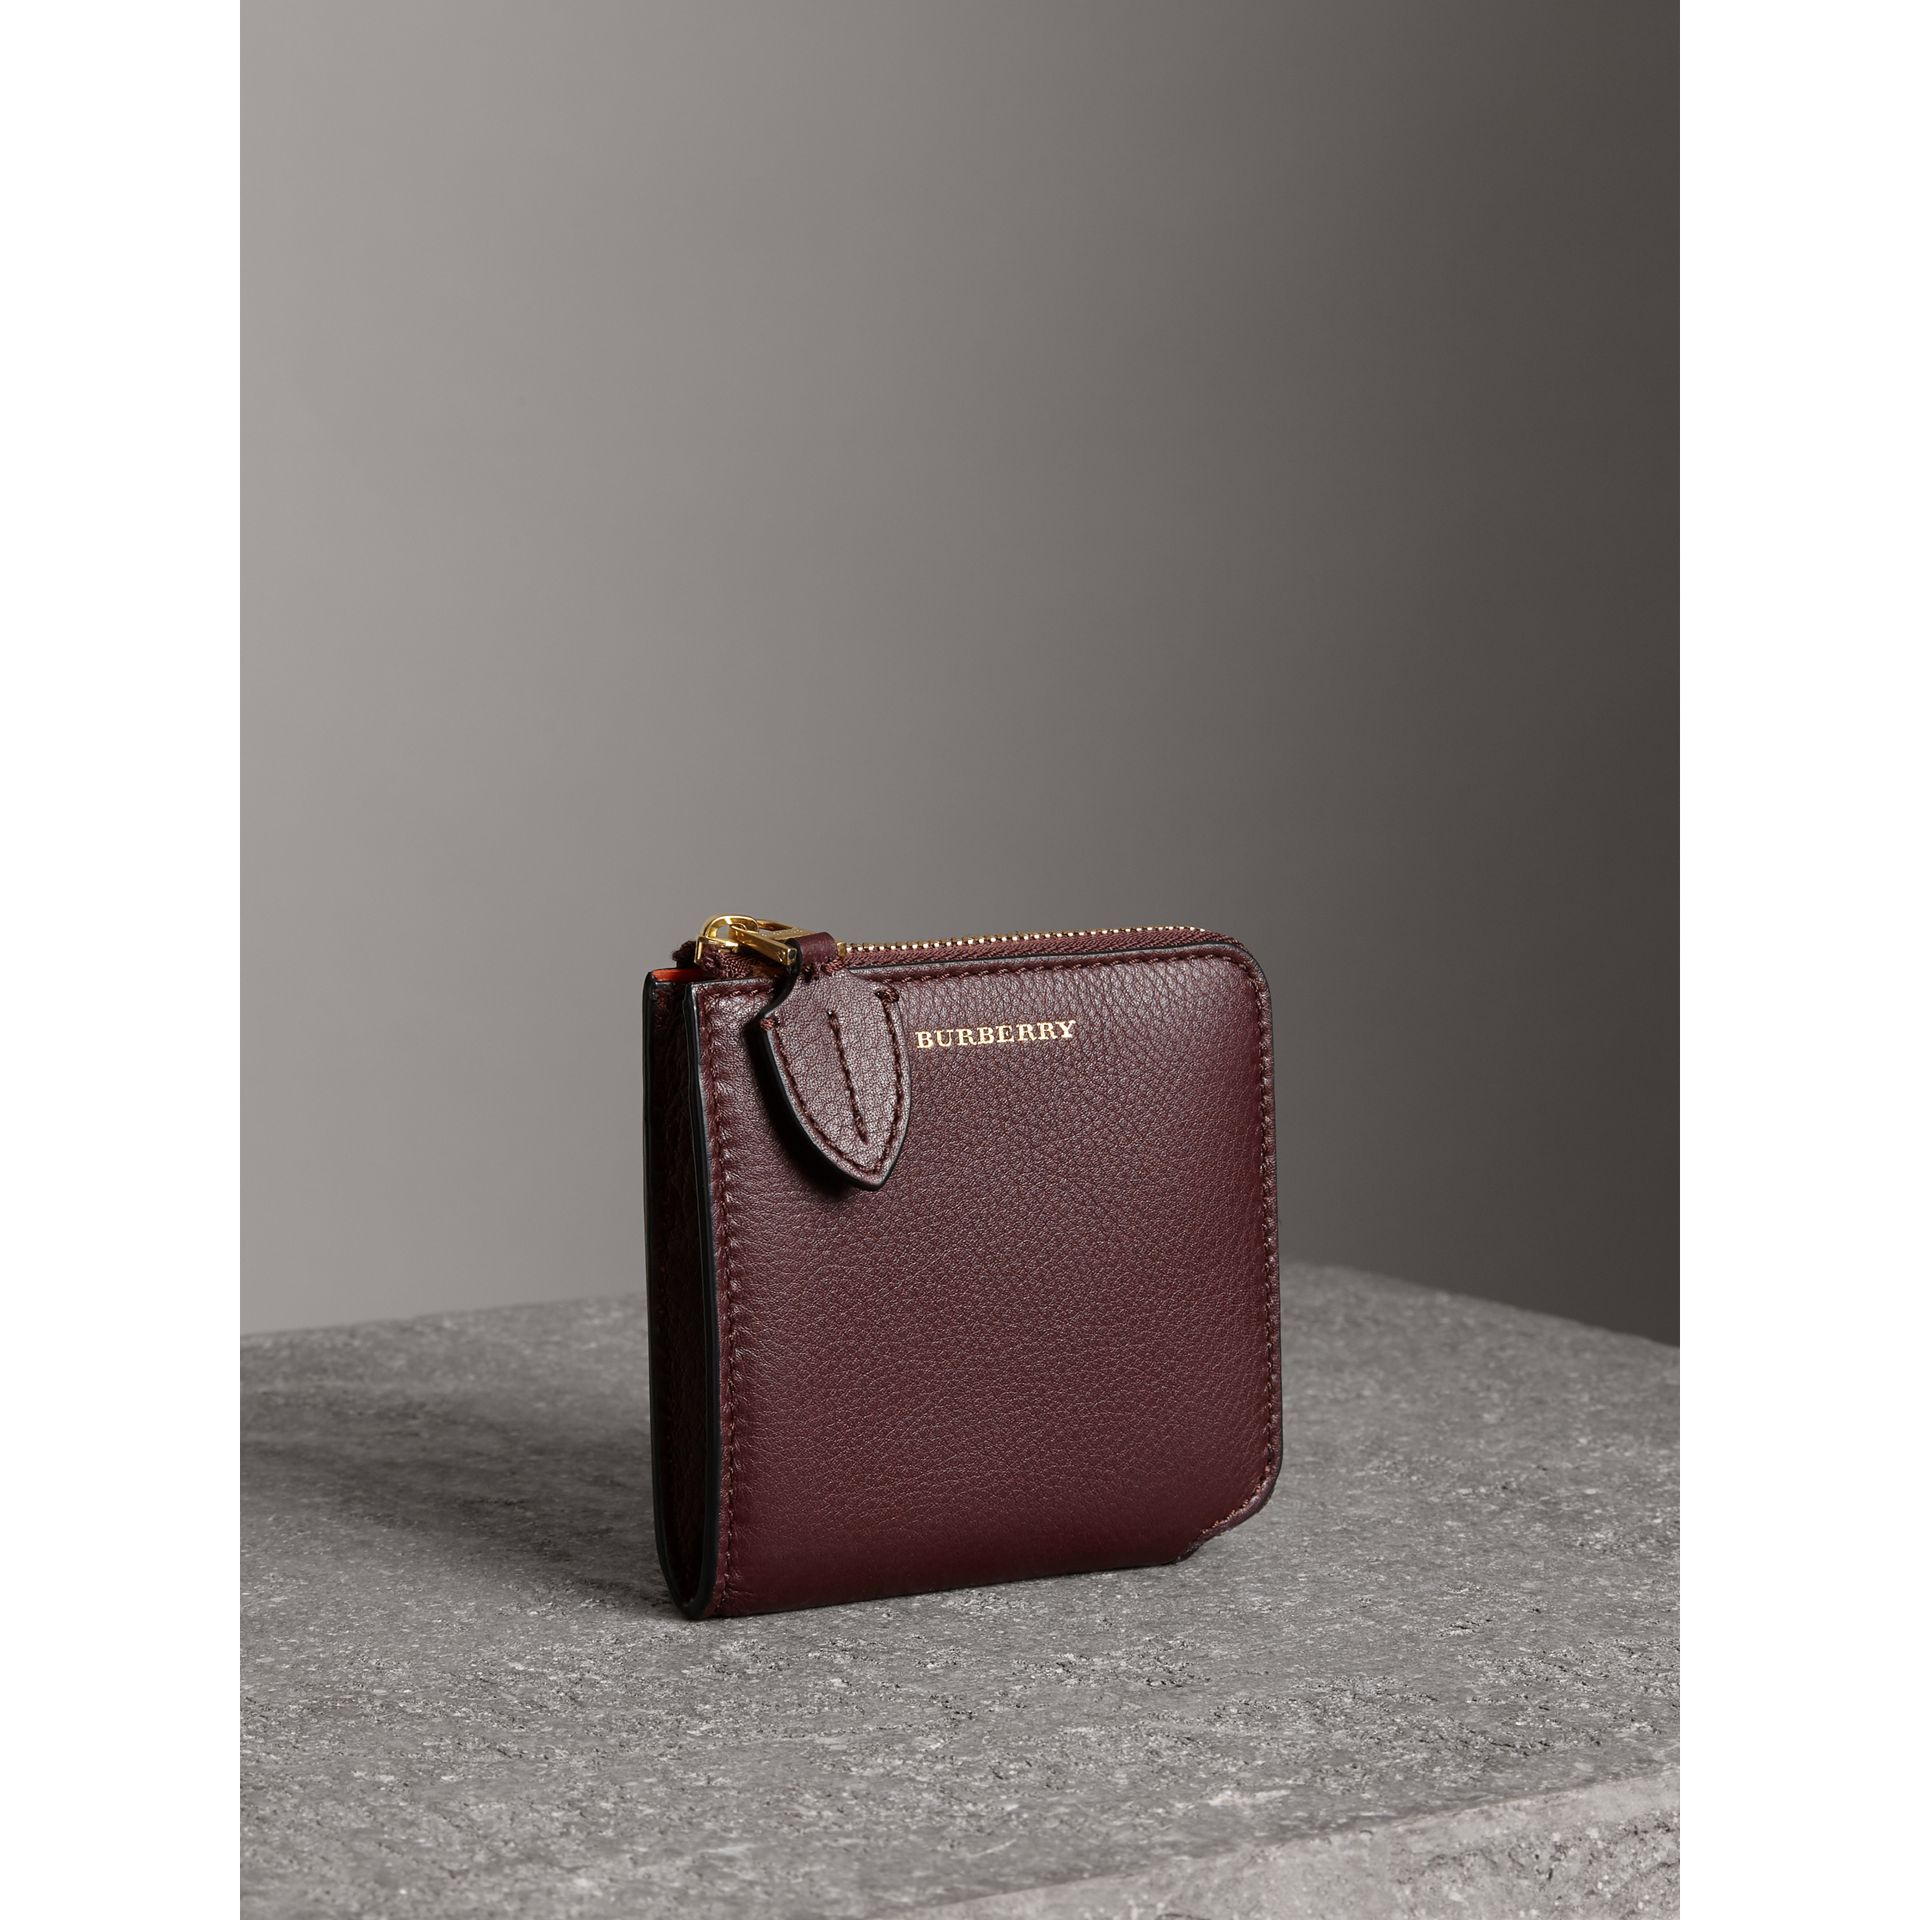 Grainy Leather Square Ziparound Wallet in Deep Claret - Women | Burberry - gallery image 4